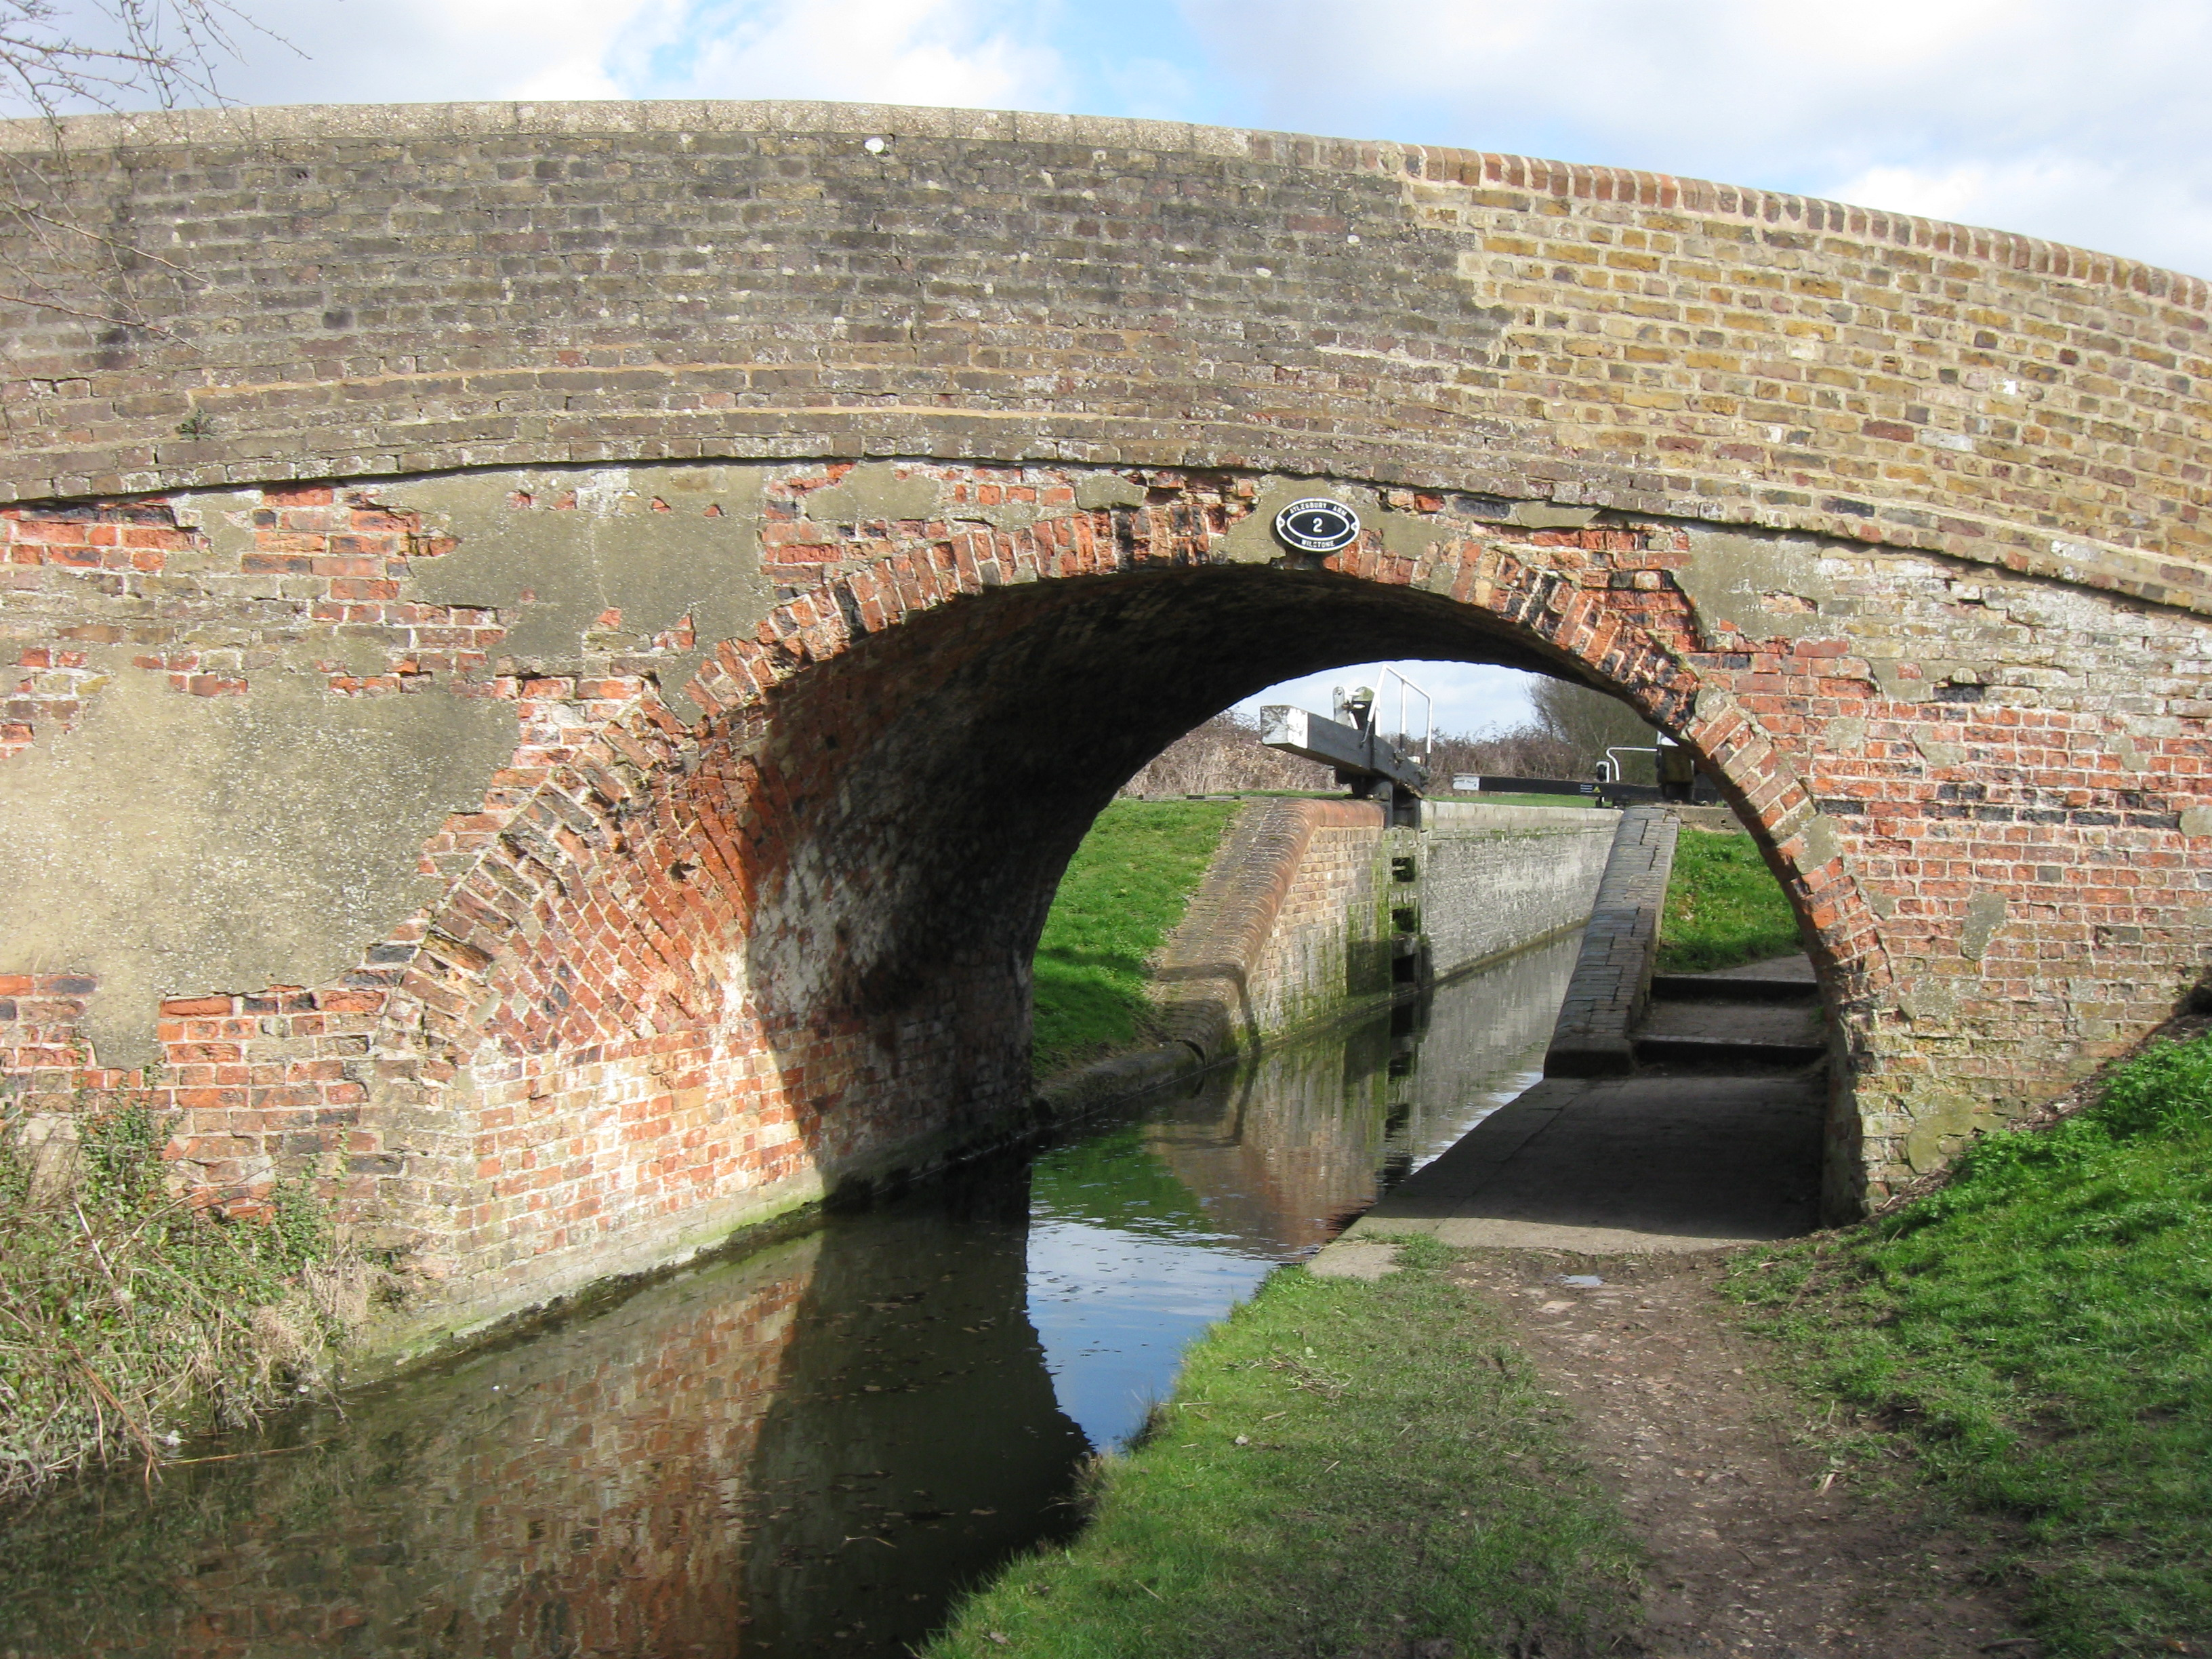 Aylesbury Arm - Canal Bridge No 2 - Dixon's Gap Bridge - geograph.org.uk - 1235895